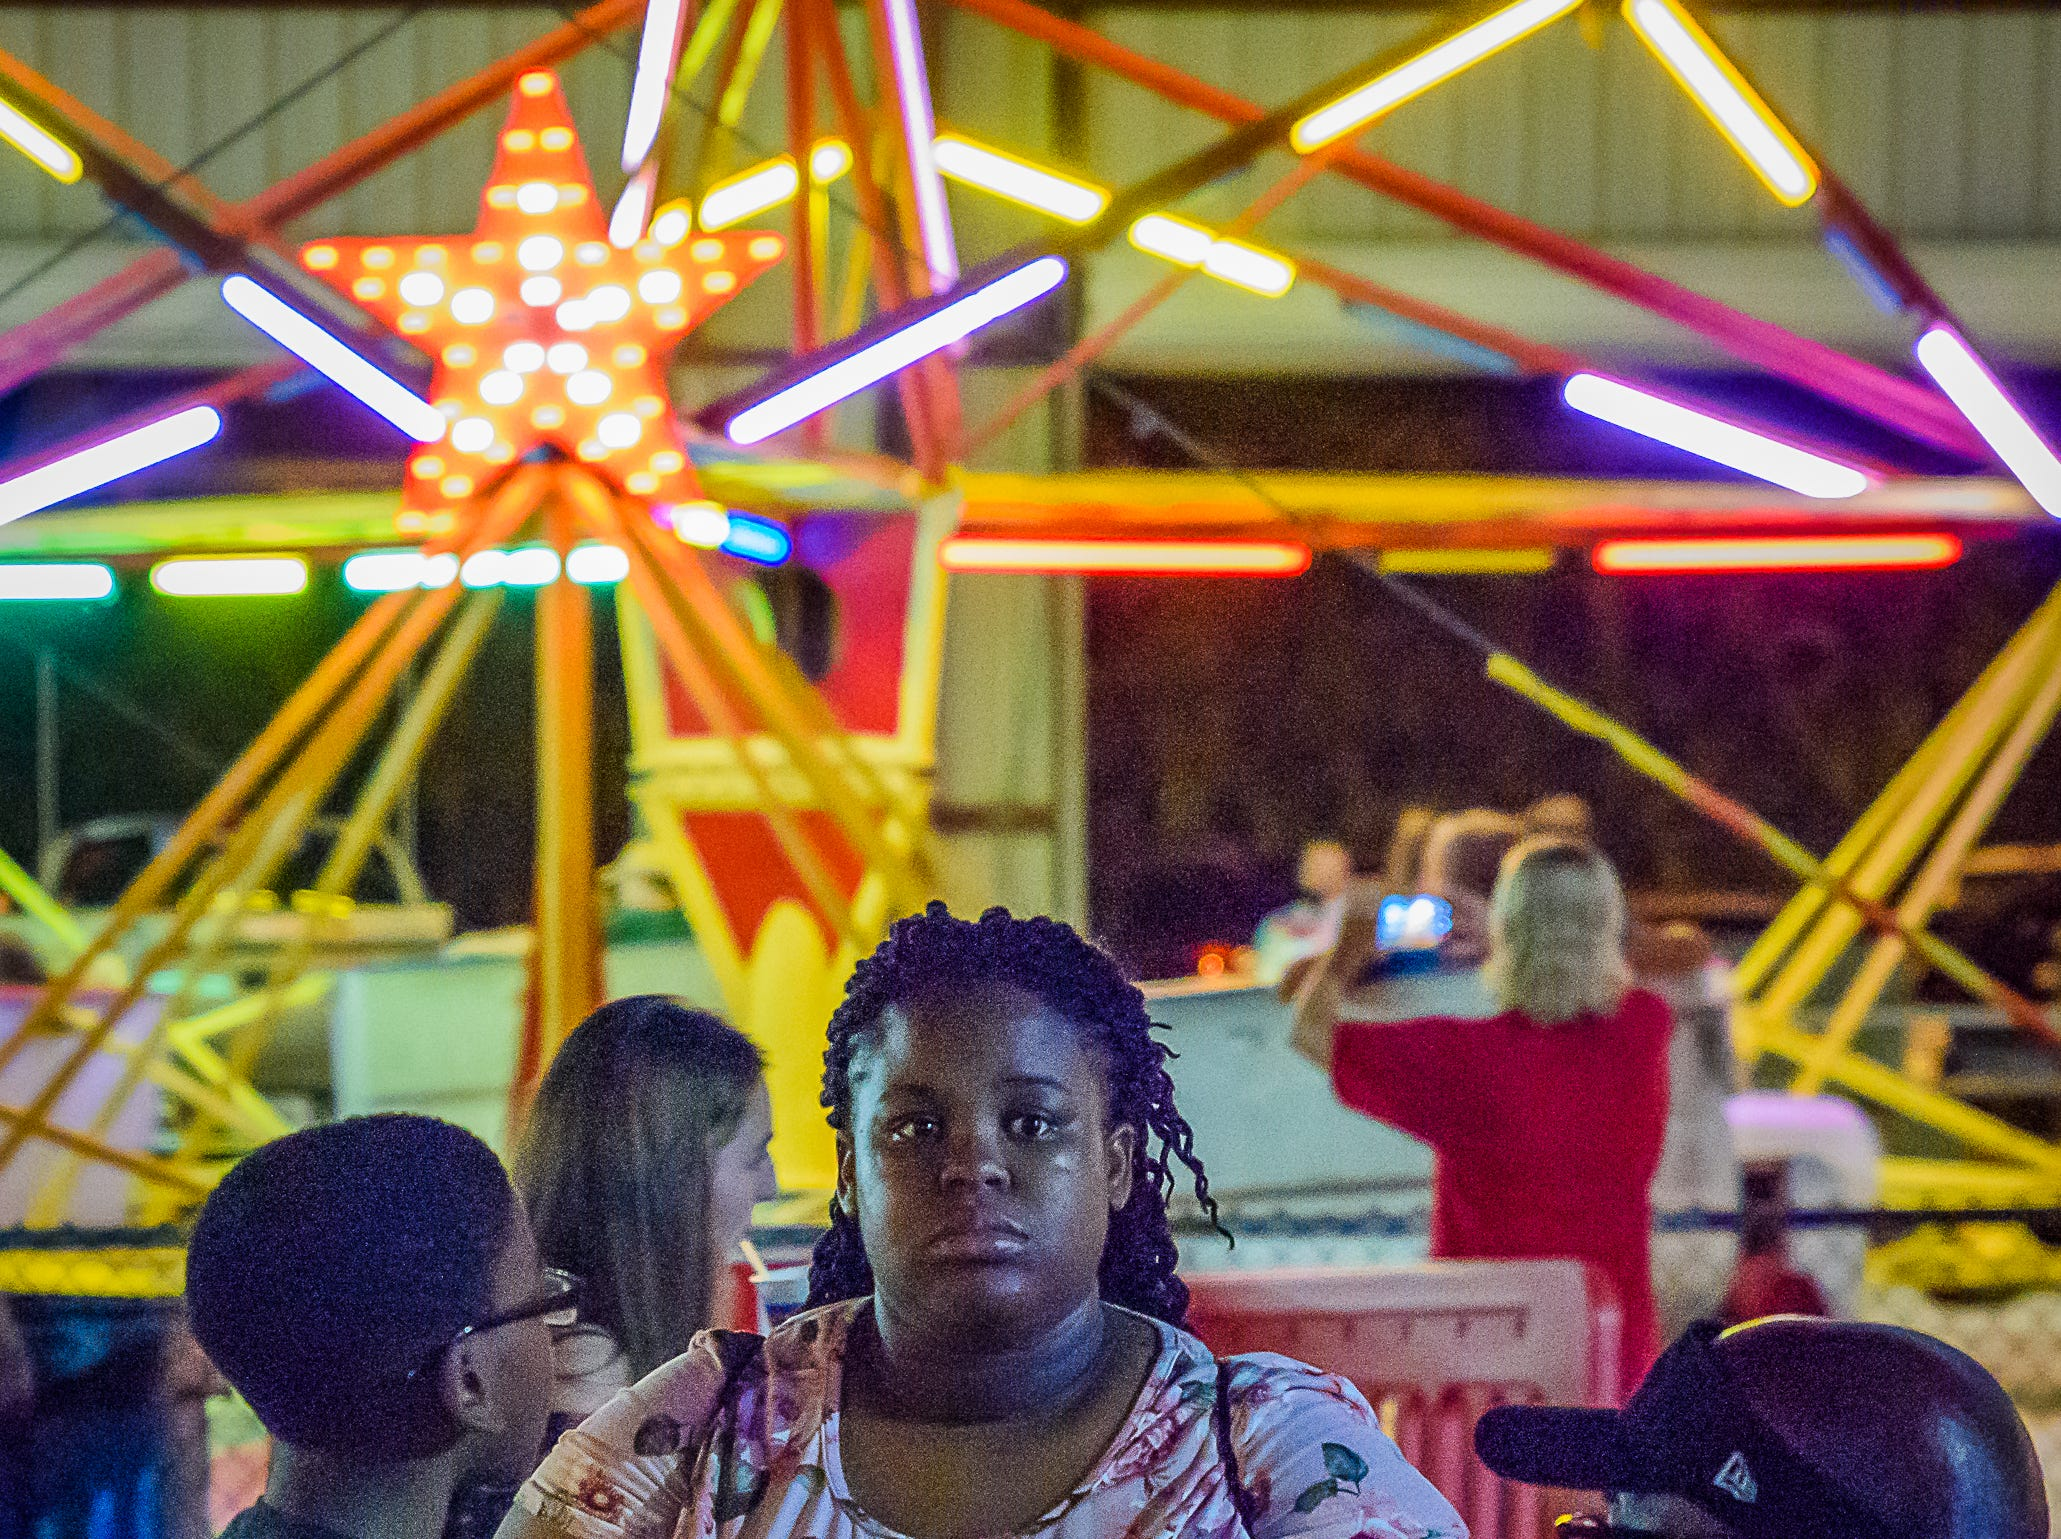 Attendees at the fair had a variety of attractions to choose from at the Chincoteague Fireman's Carnival.